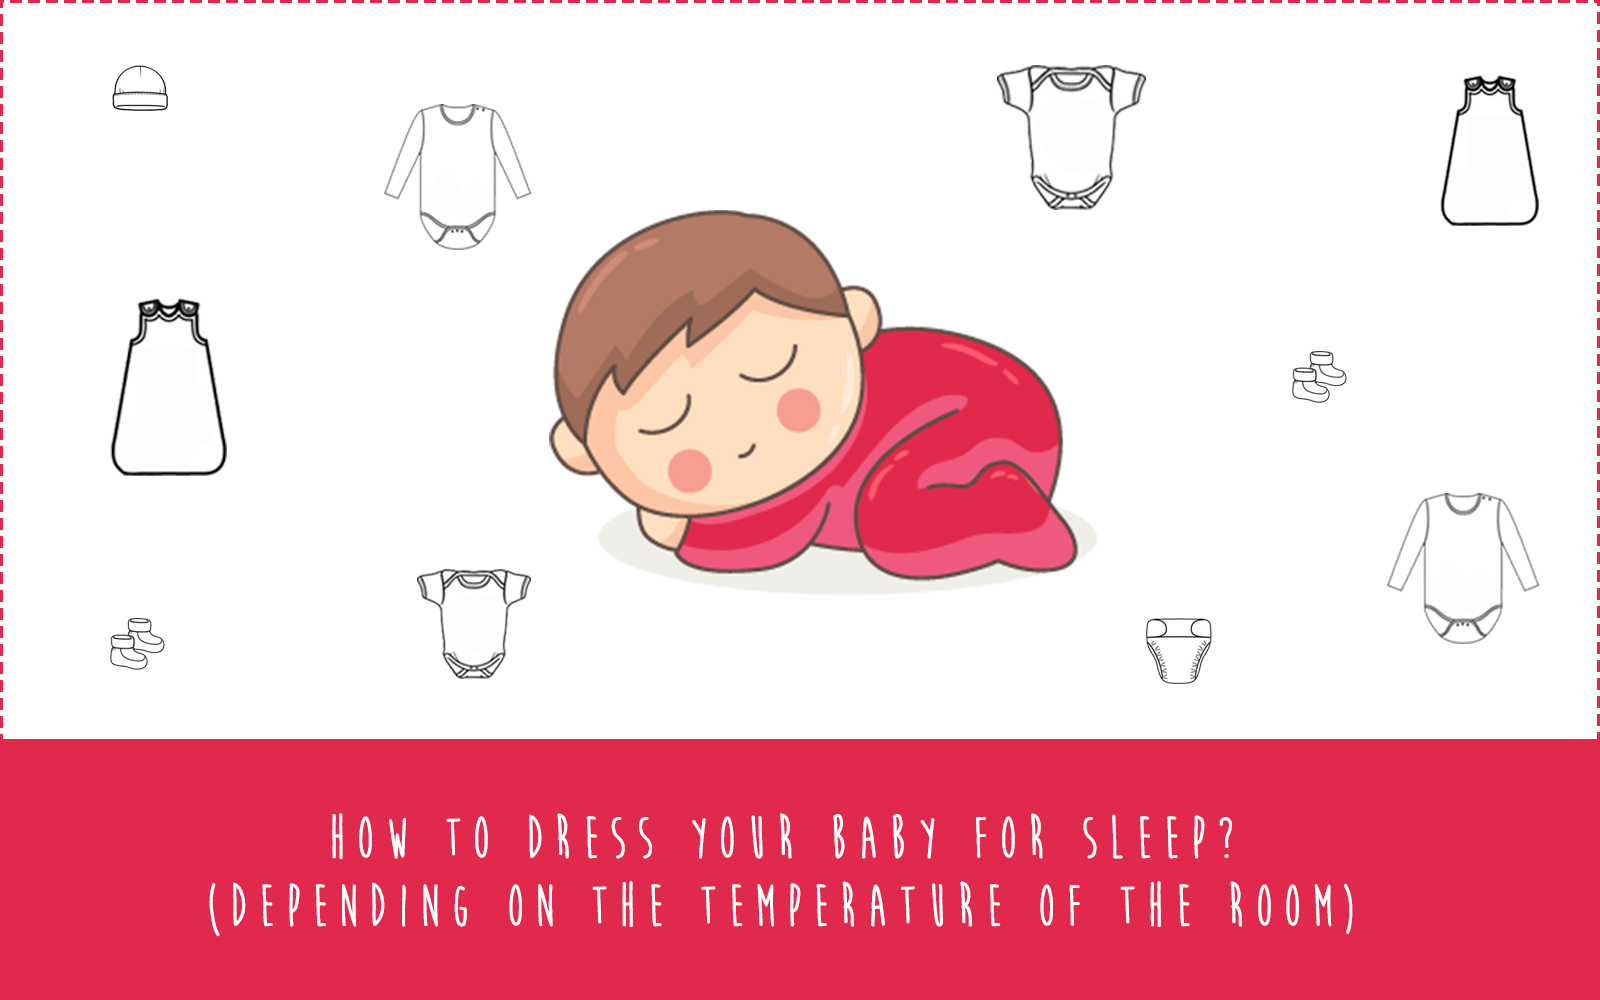 How to dress baby for sleep at night? (Depending on the temperature of the room)